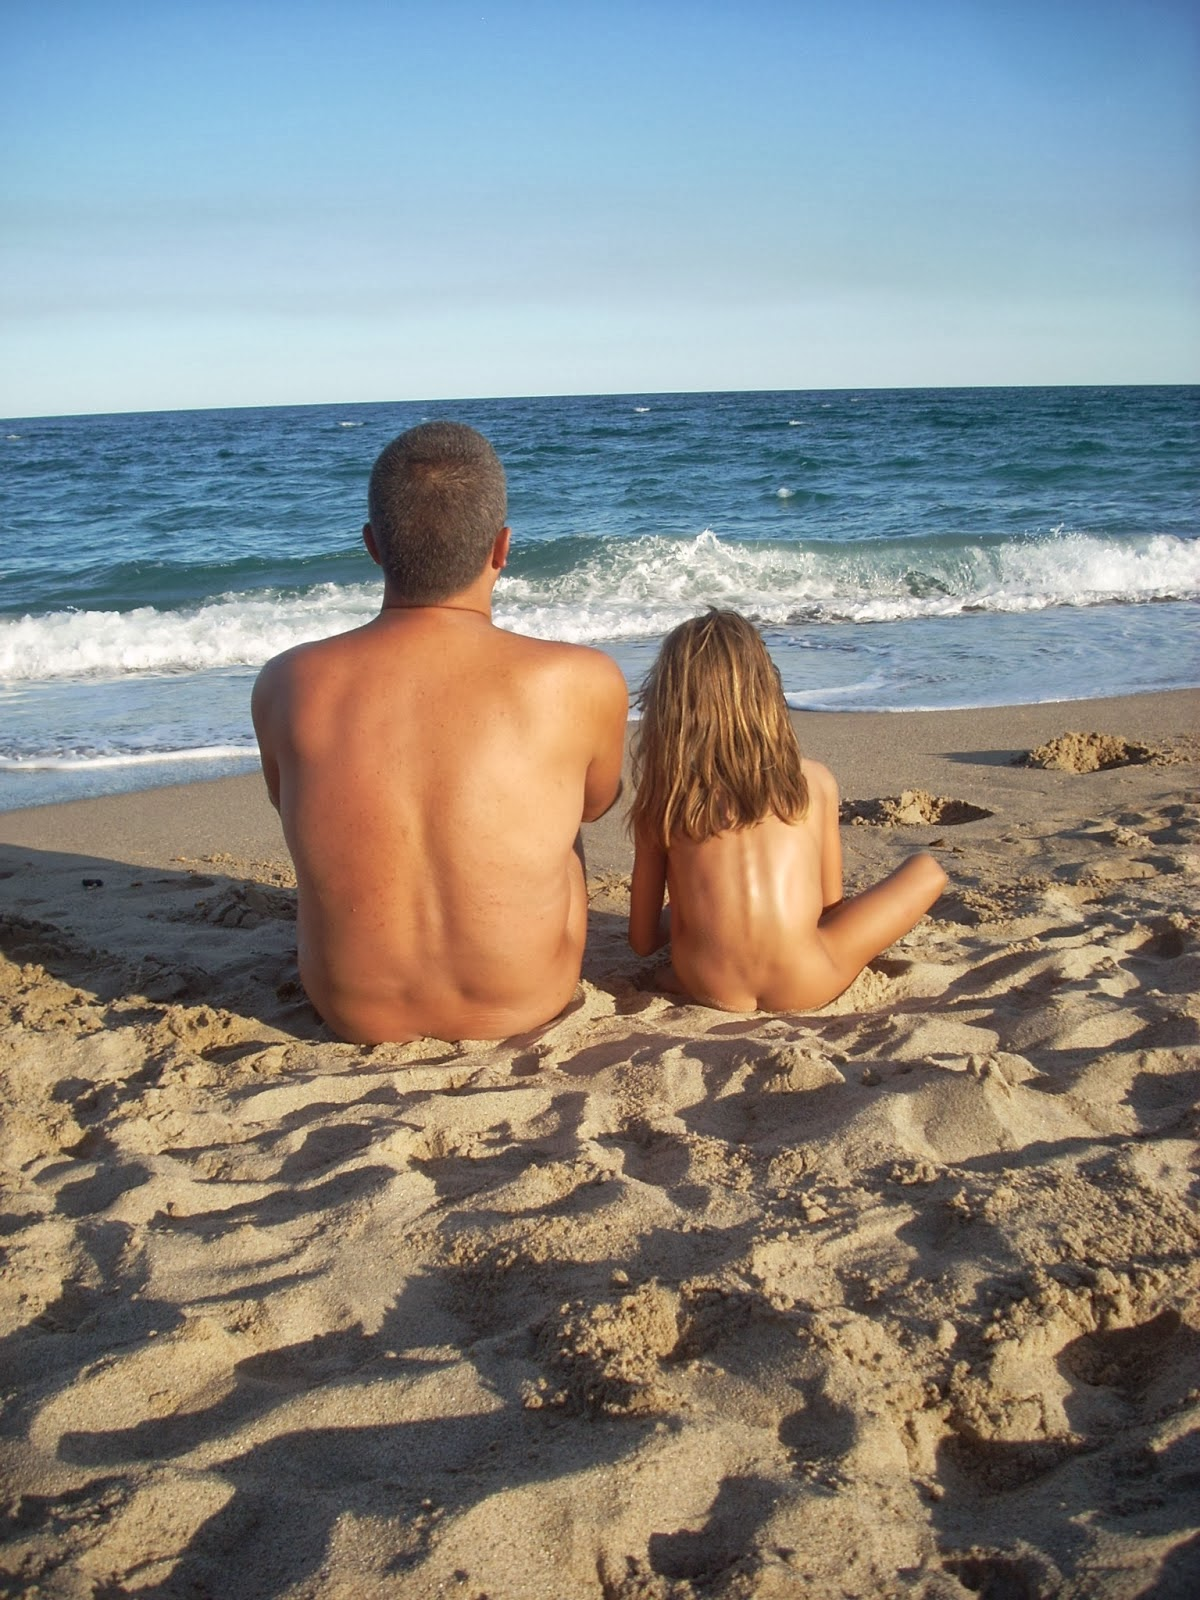 Pictures Of People On Nude Beaches